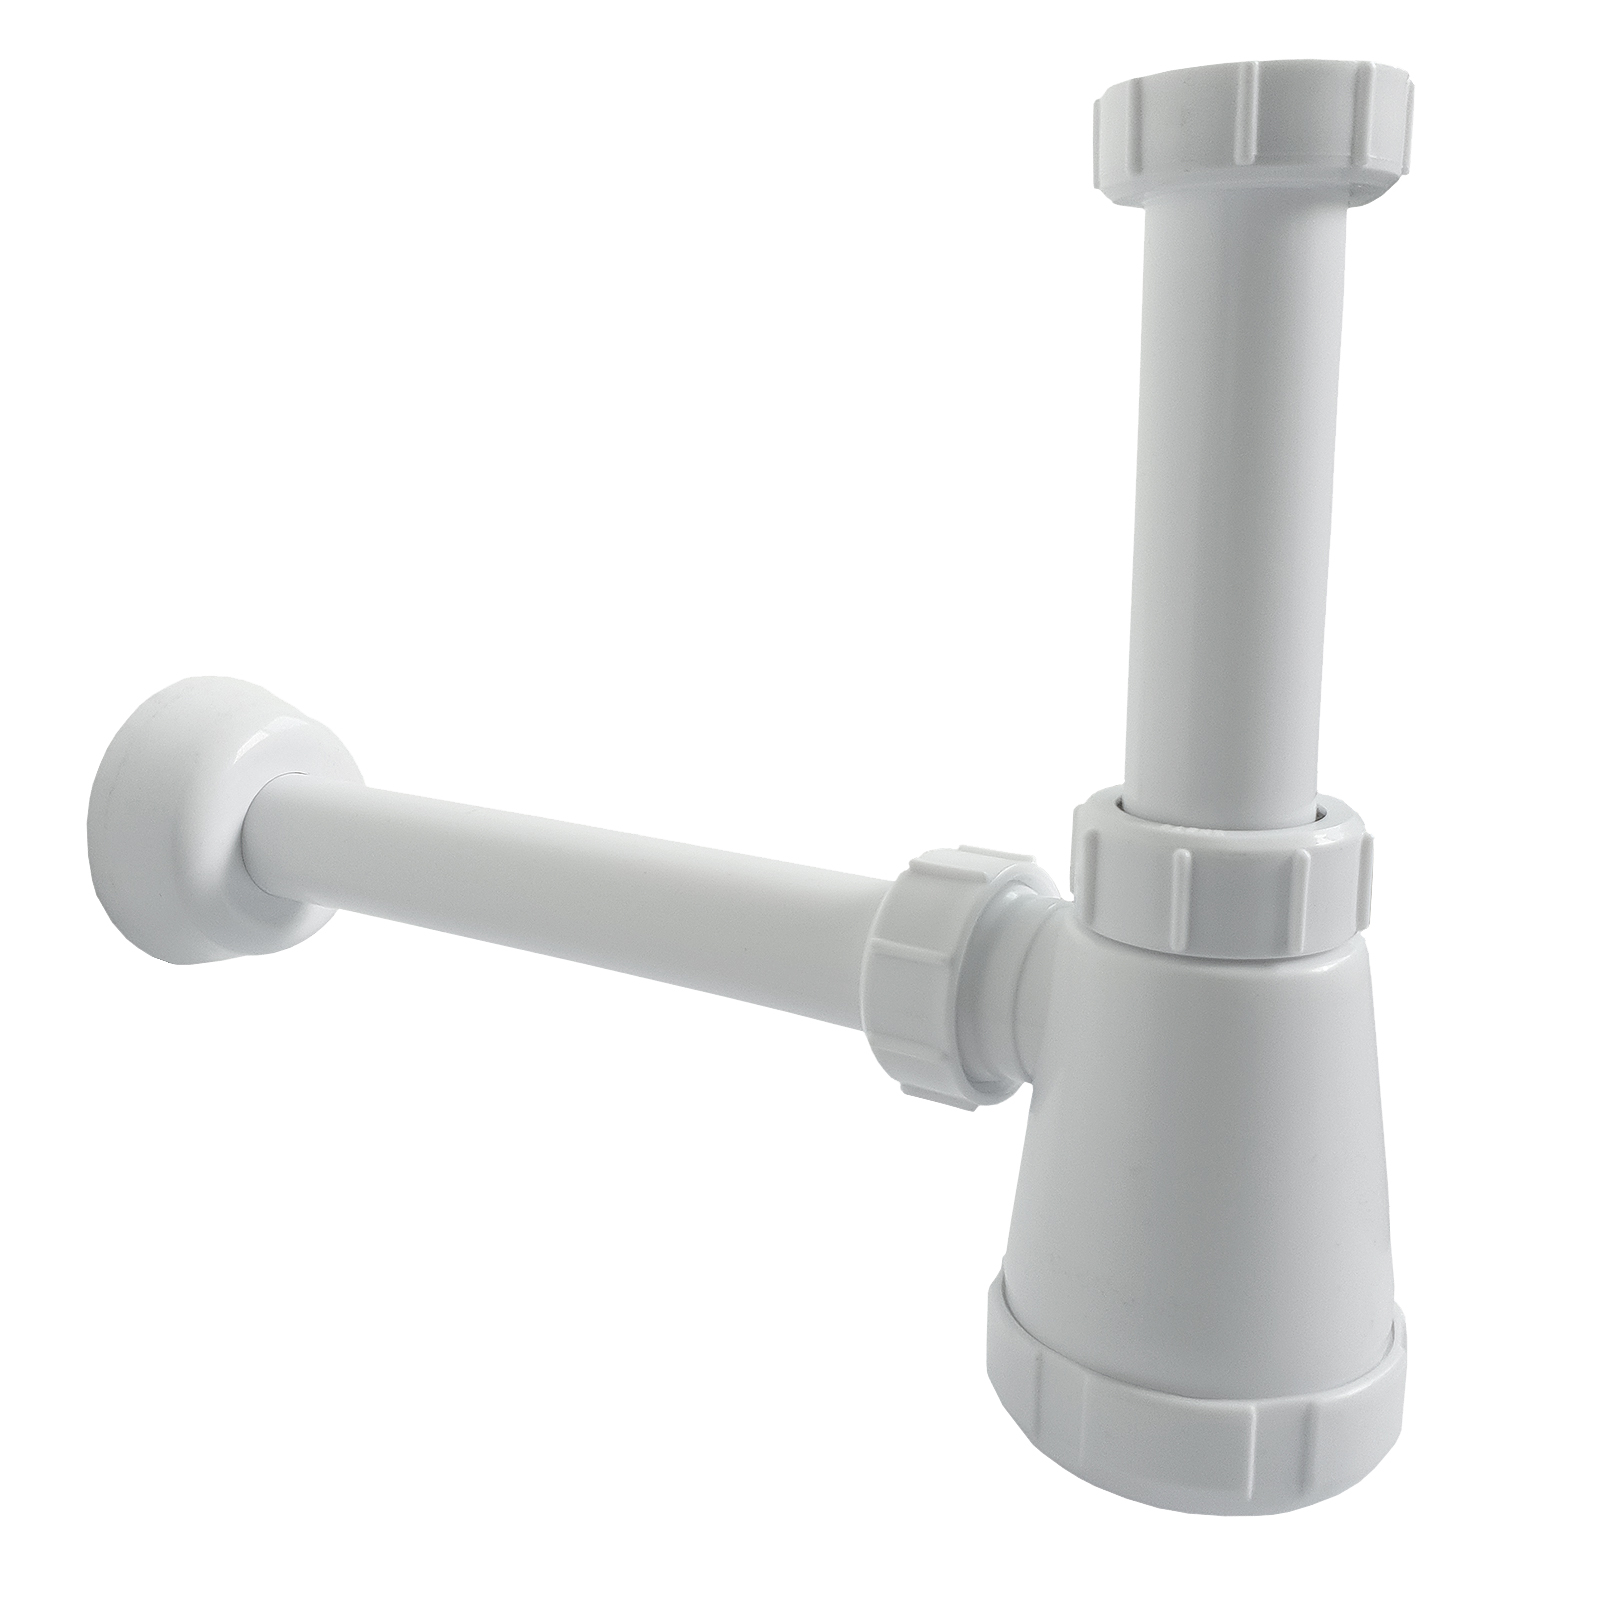 Plastic siphon bottle siphon 1014 for sinks with 1 1/4 inch connection